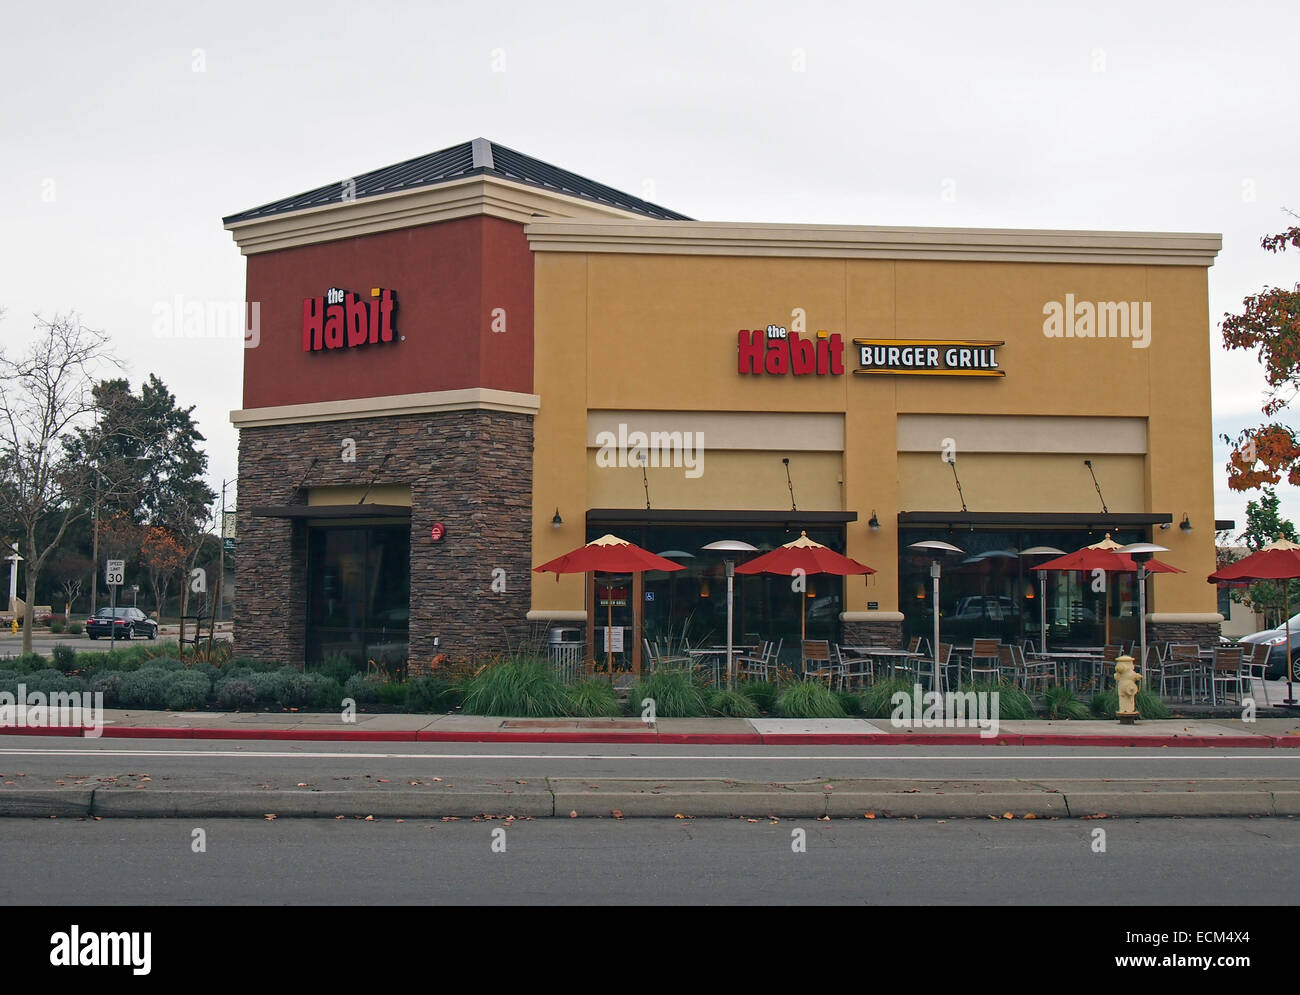 the Habit Burger Grill store - Stock Image